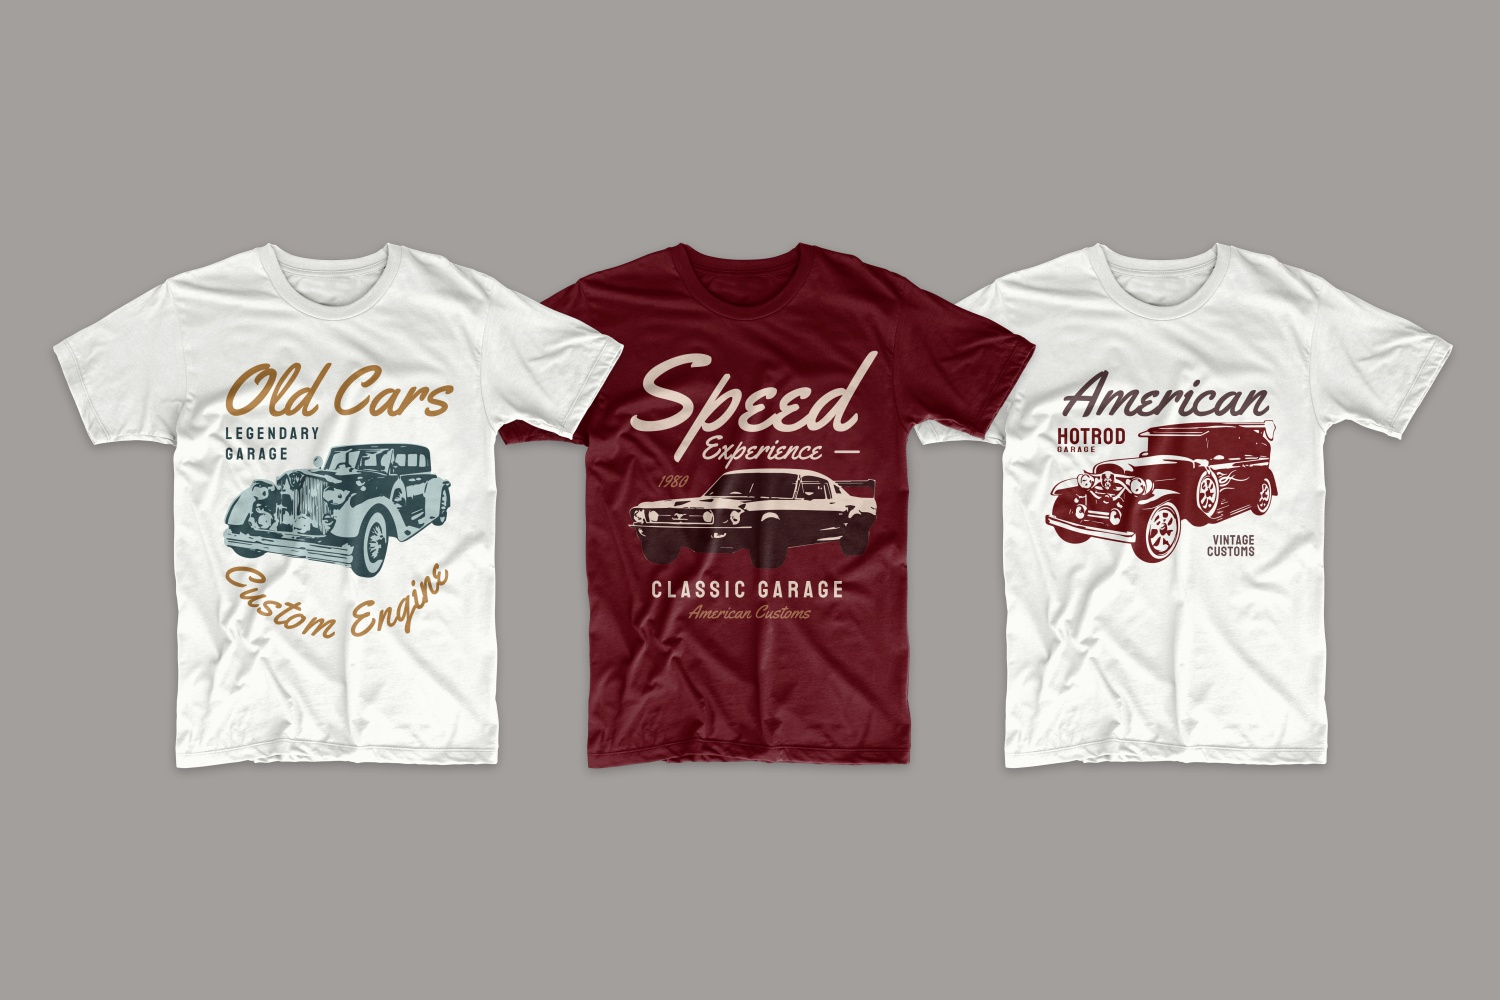 T-shirts with old cars and their characteristics.